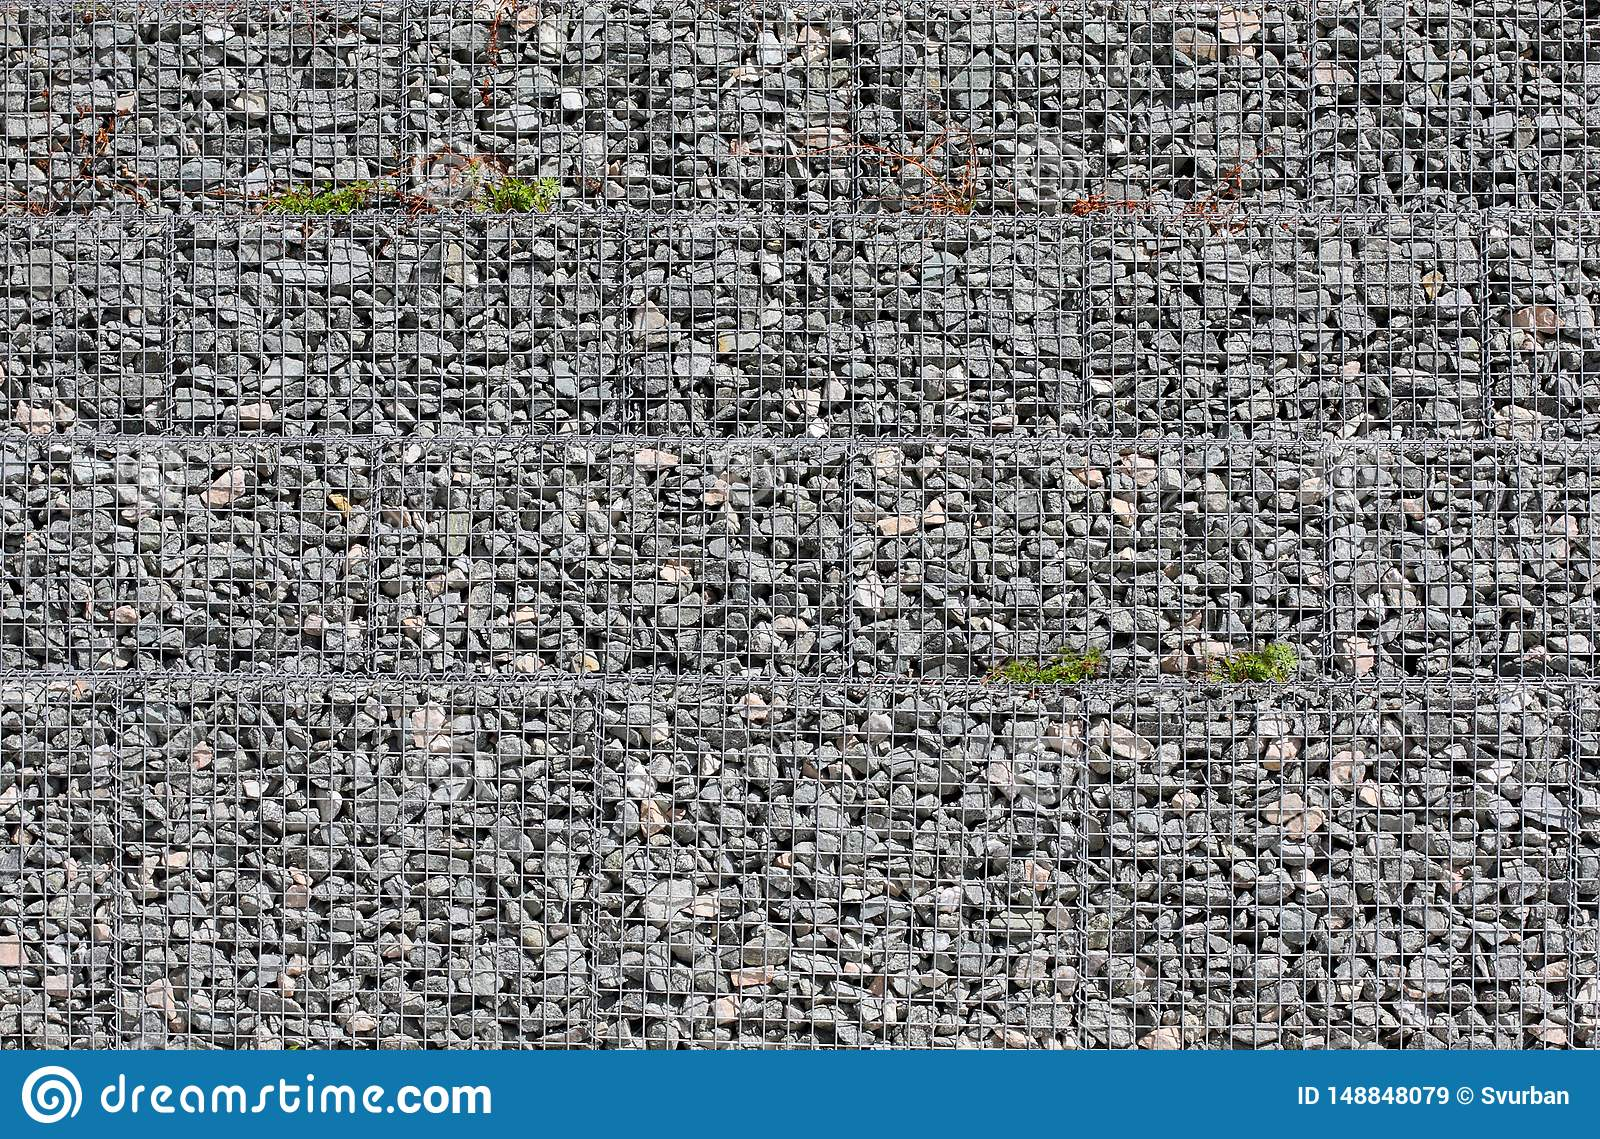 Grey ground stone rubble background of many small stones